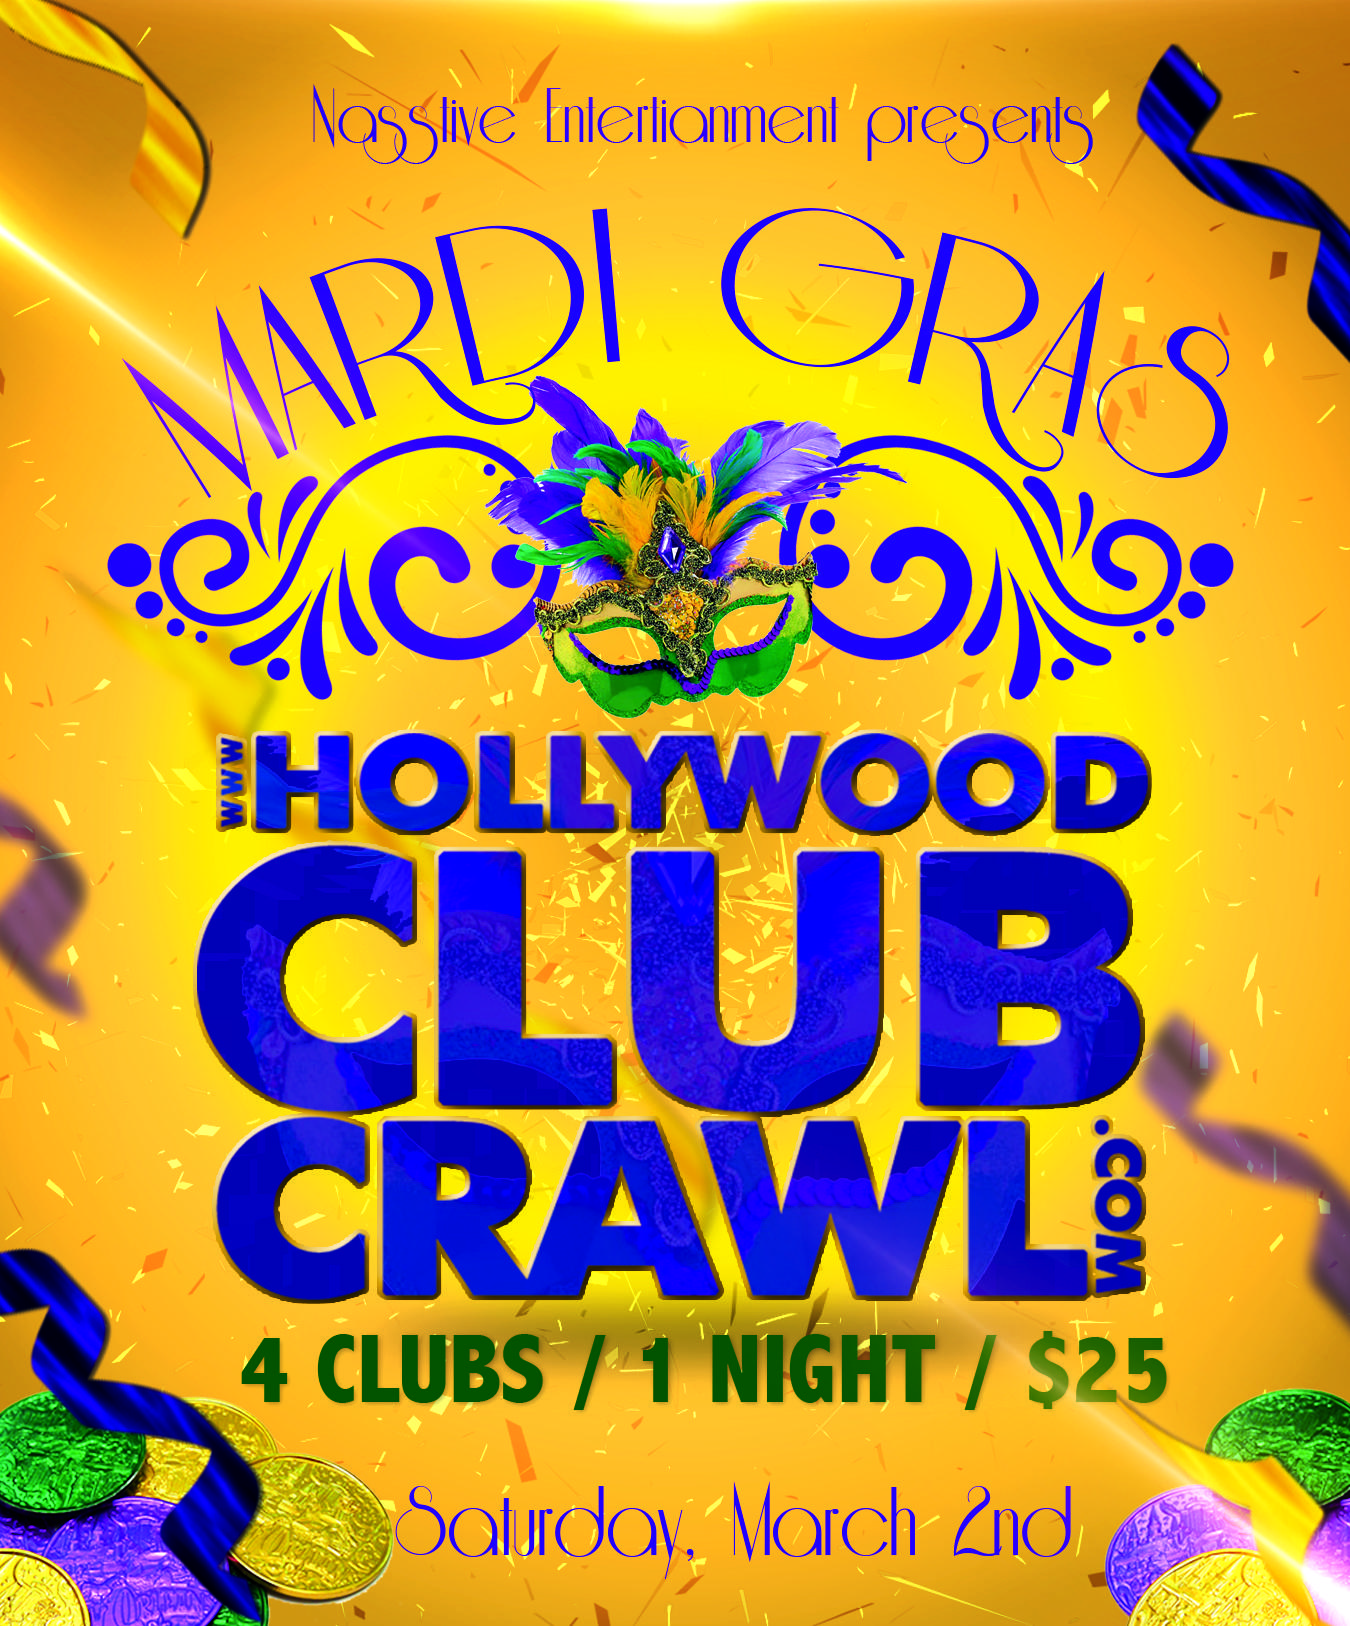 Hollywood MARDI GRAS Club Crawl - All access party pass